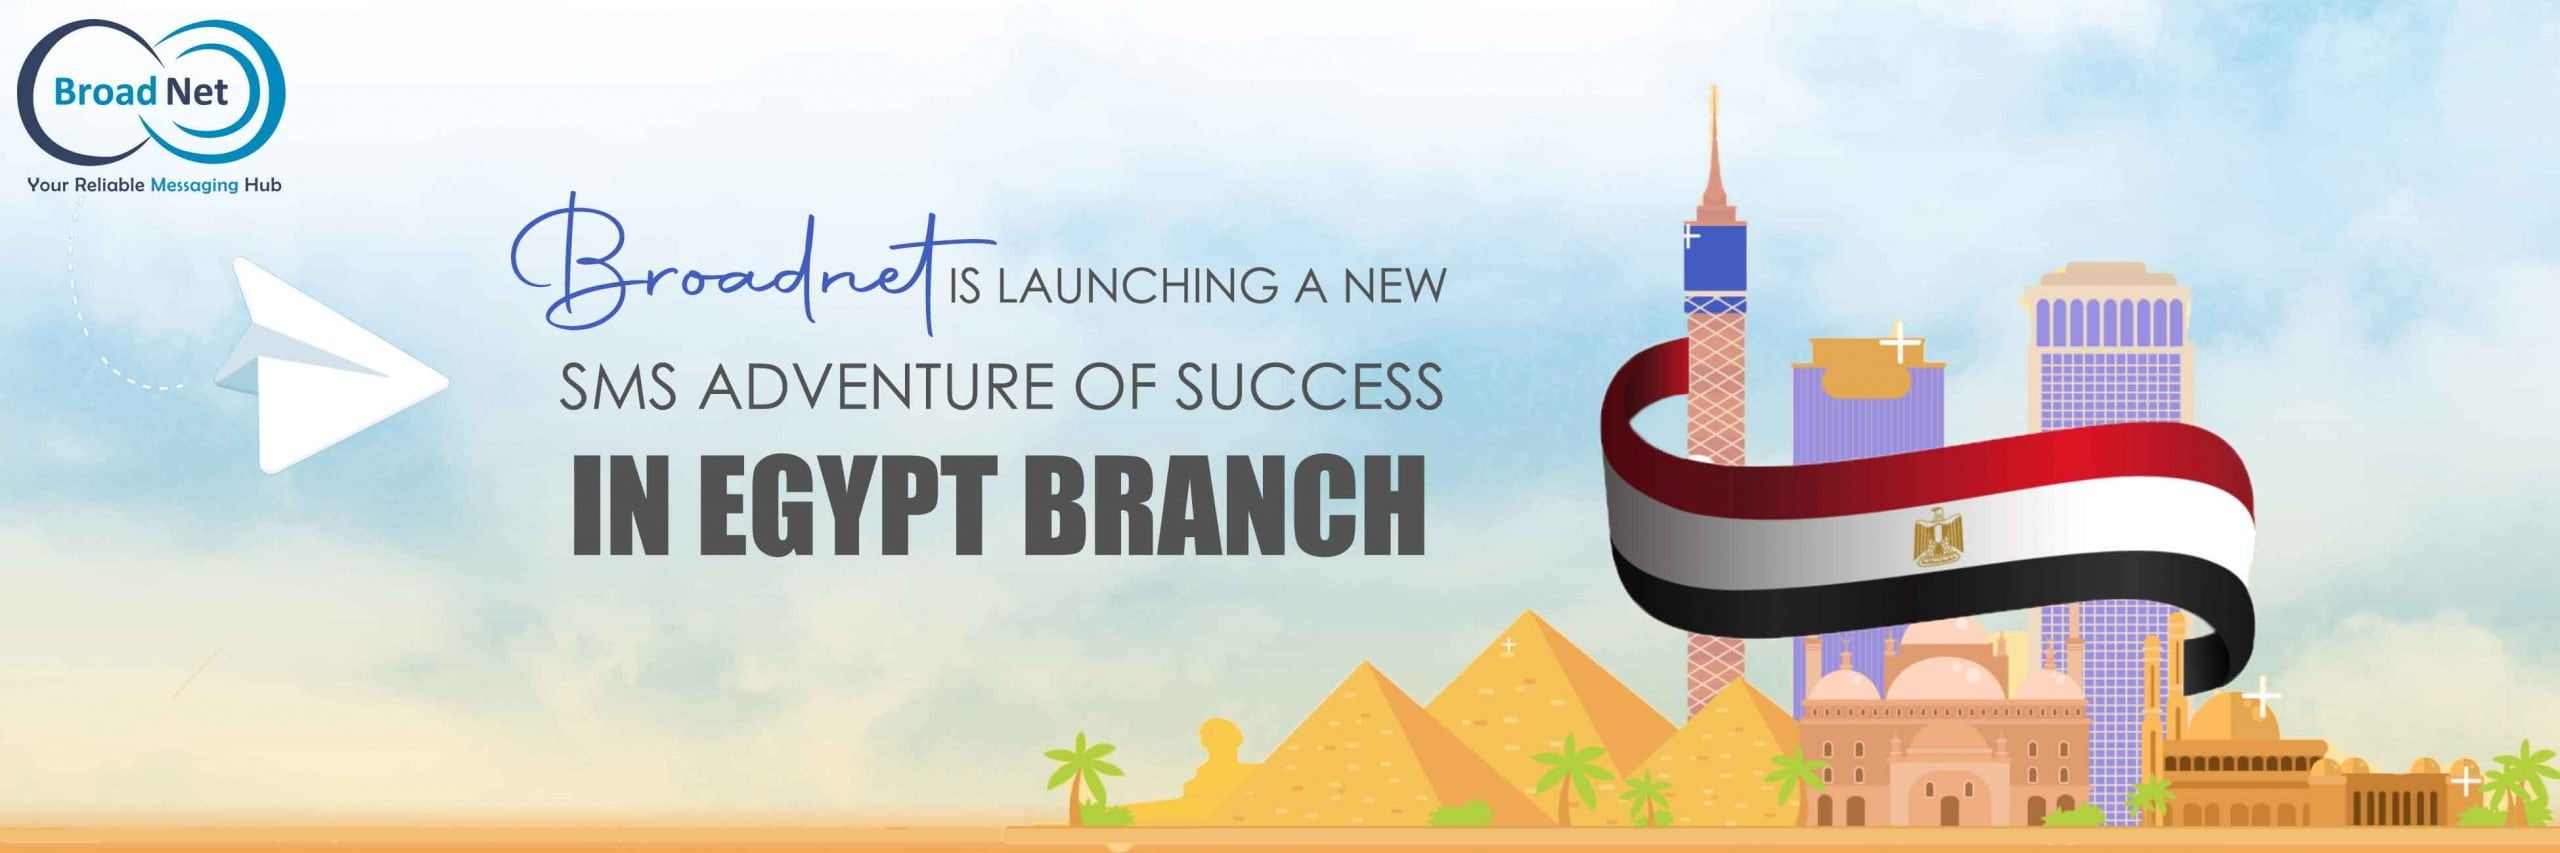 BROADNET IS LAUNCHING A NEW SMS ADVENTURE OF SUCCESS IN EGYPT